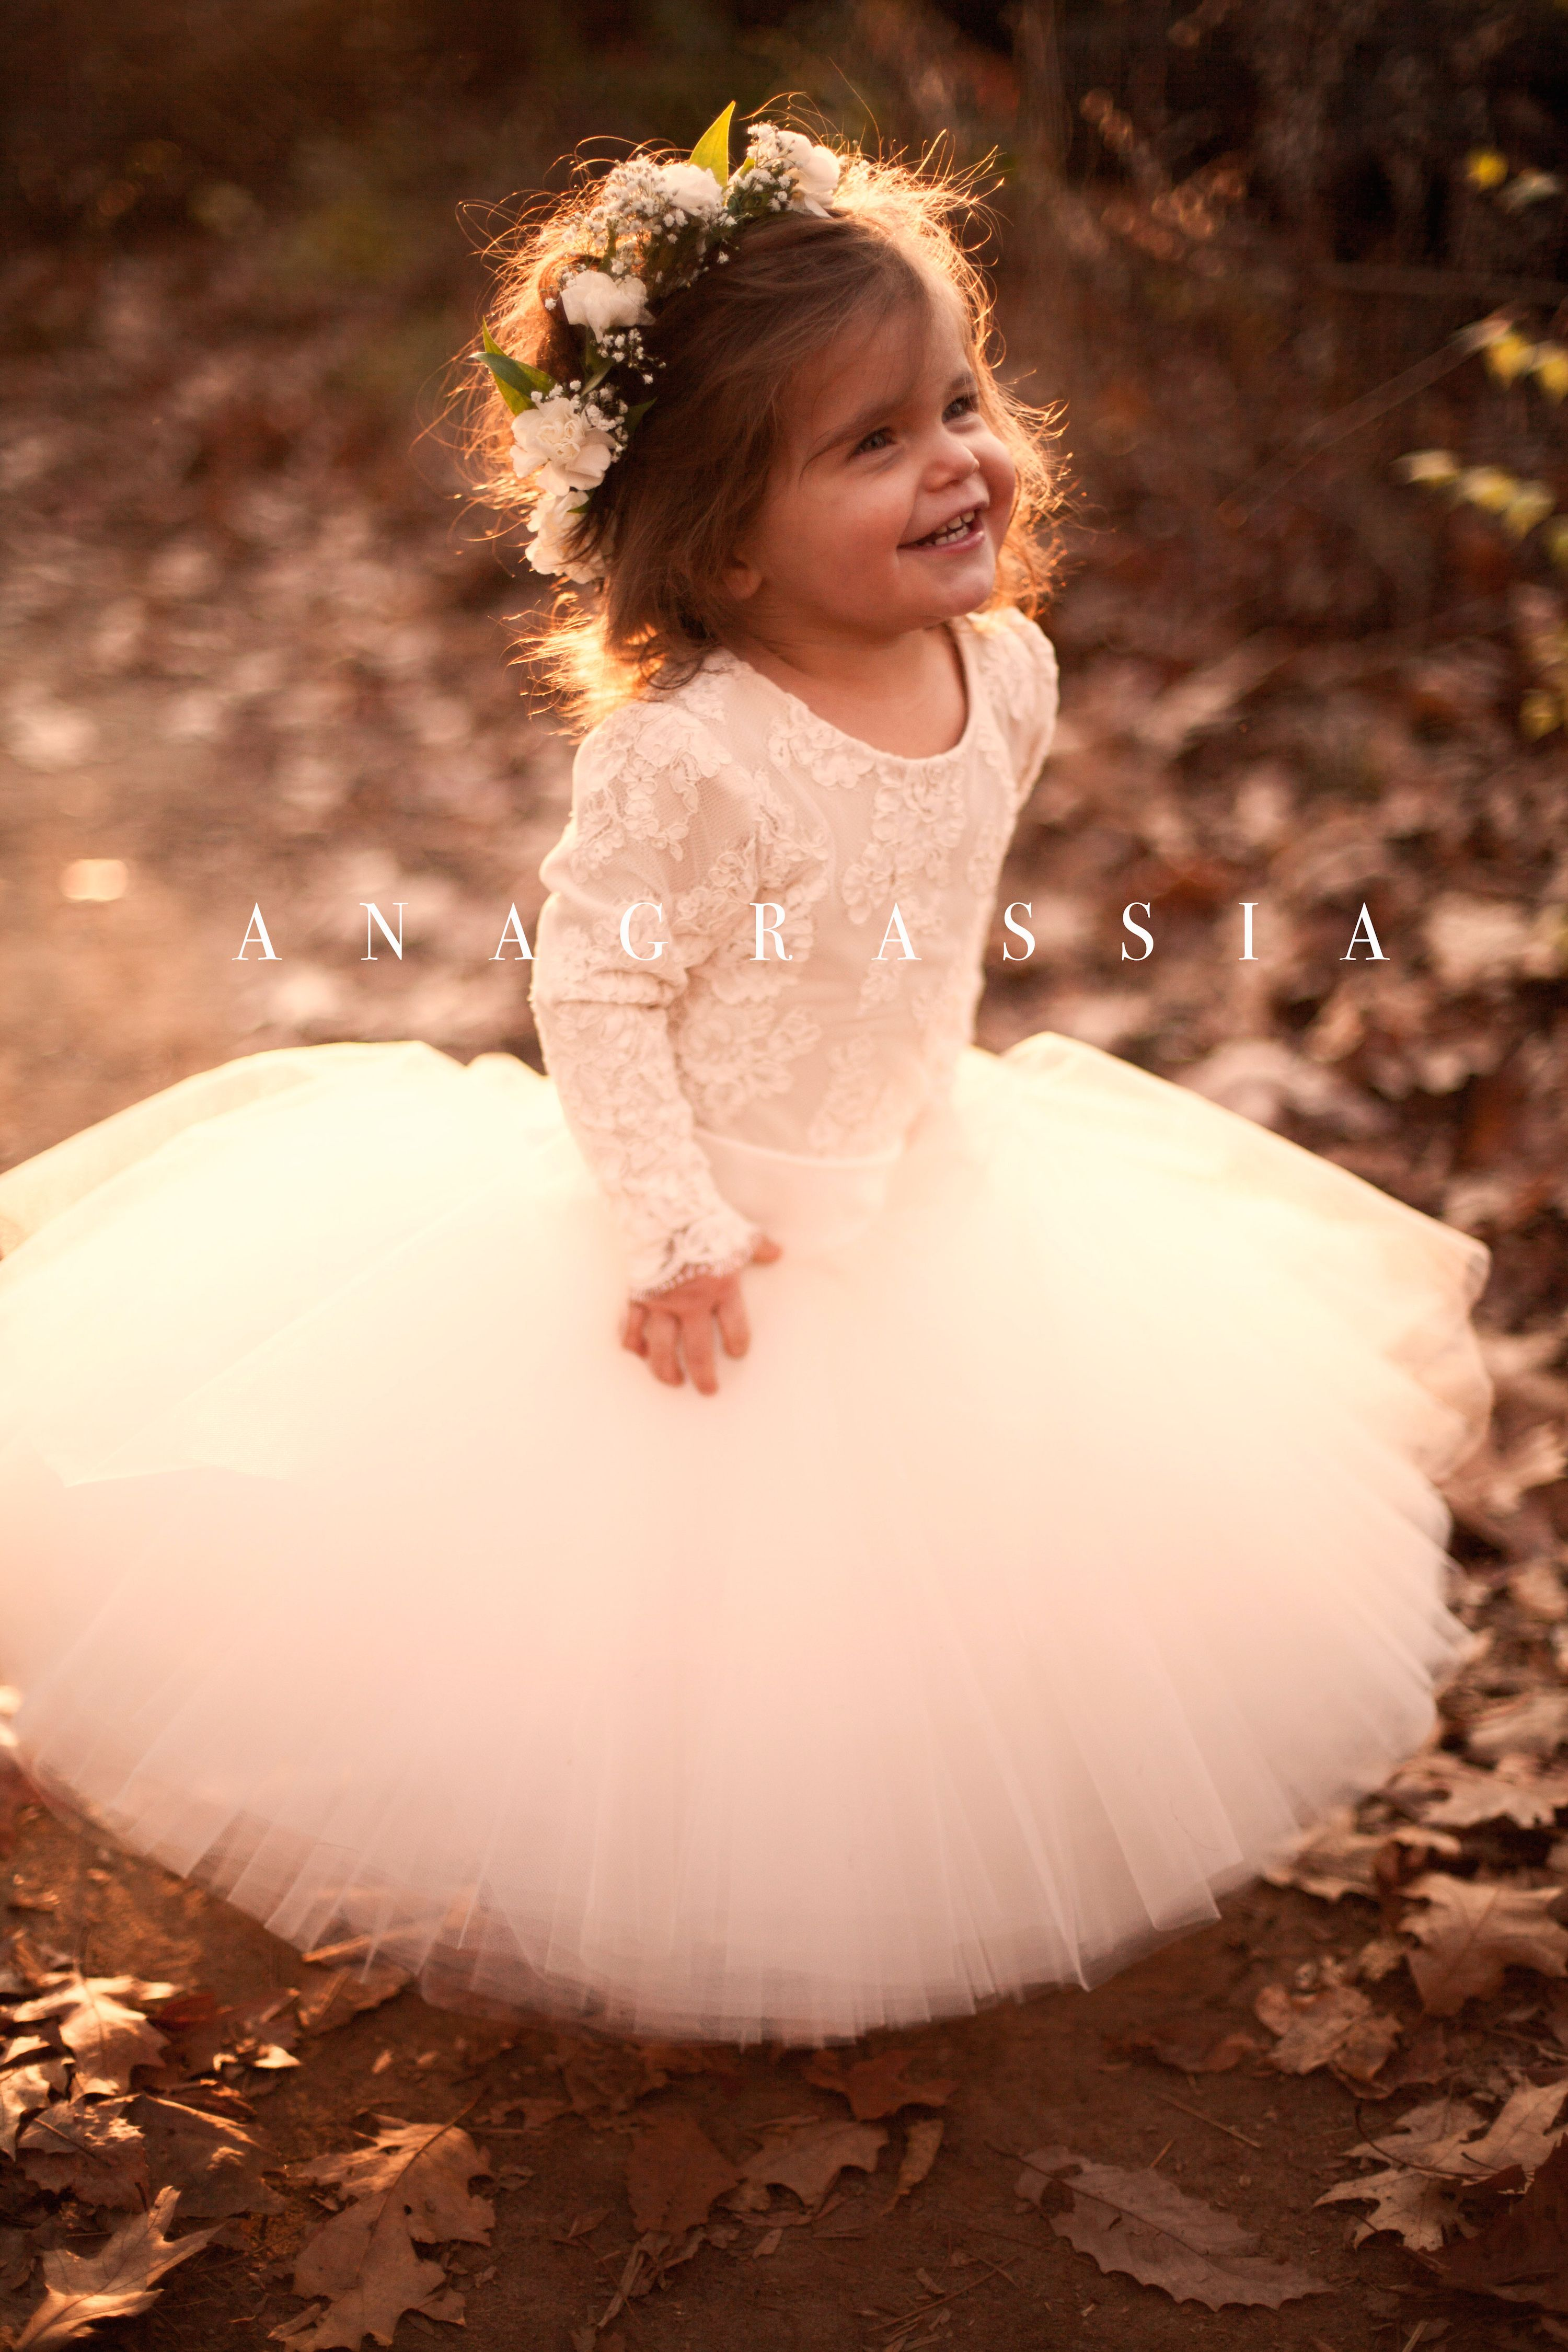 e022542455a Anagrassia Fall Wedding Flower Girl Dresses: Blush, Ivory, Nude, White, and